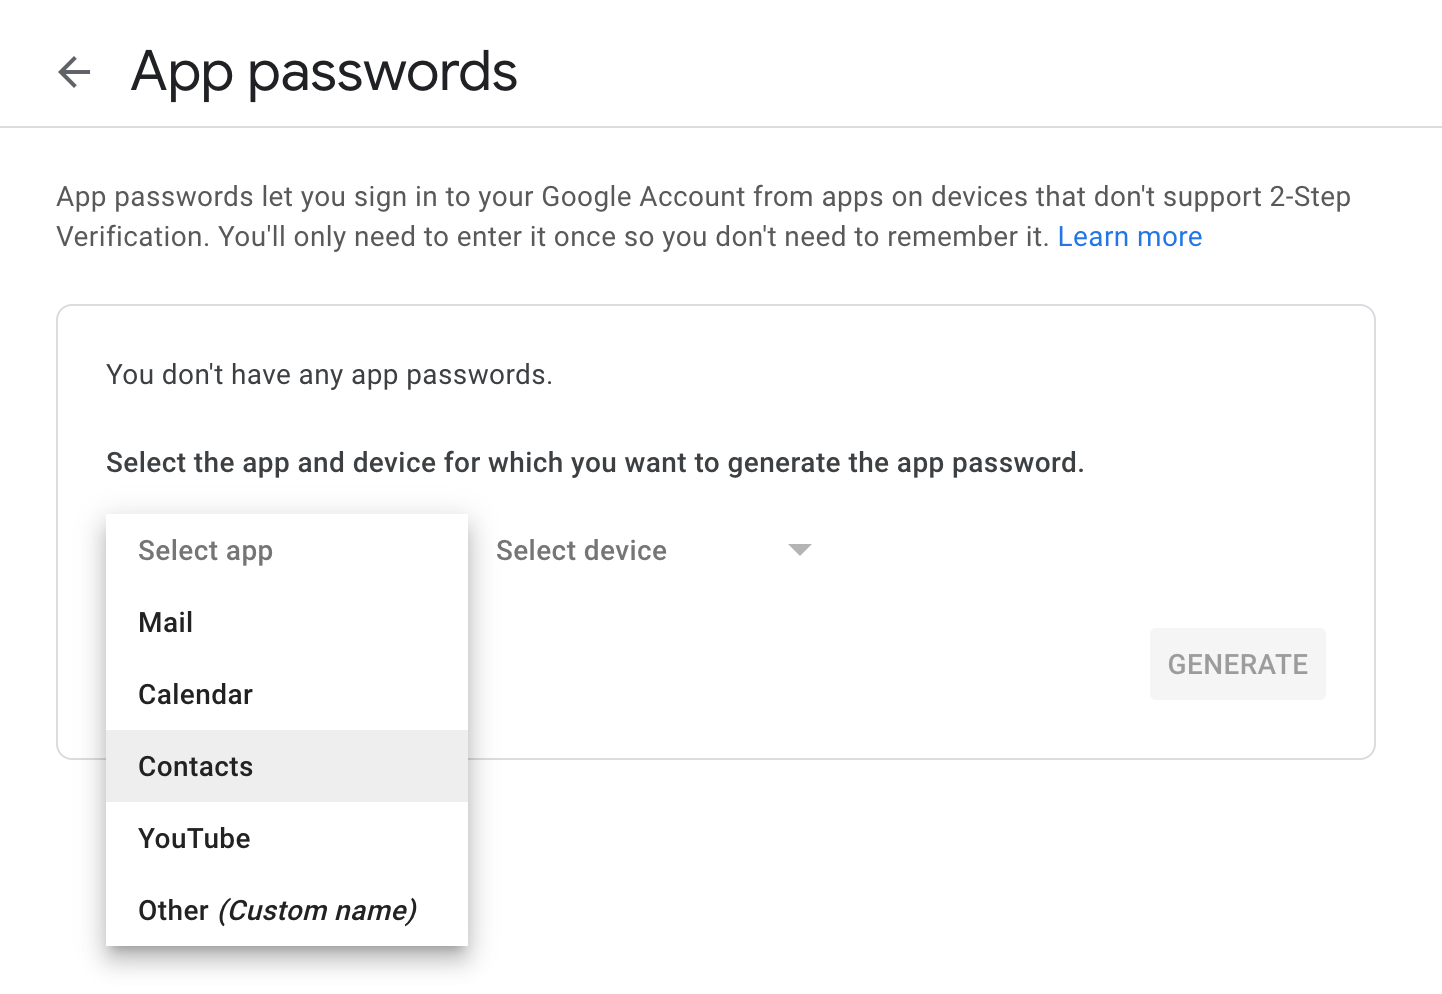 App passwords let you sign in to your Google Account from apps on devices that don't support 2-Step Verification. You'll only need to enter it once so you don't need to remember it.